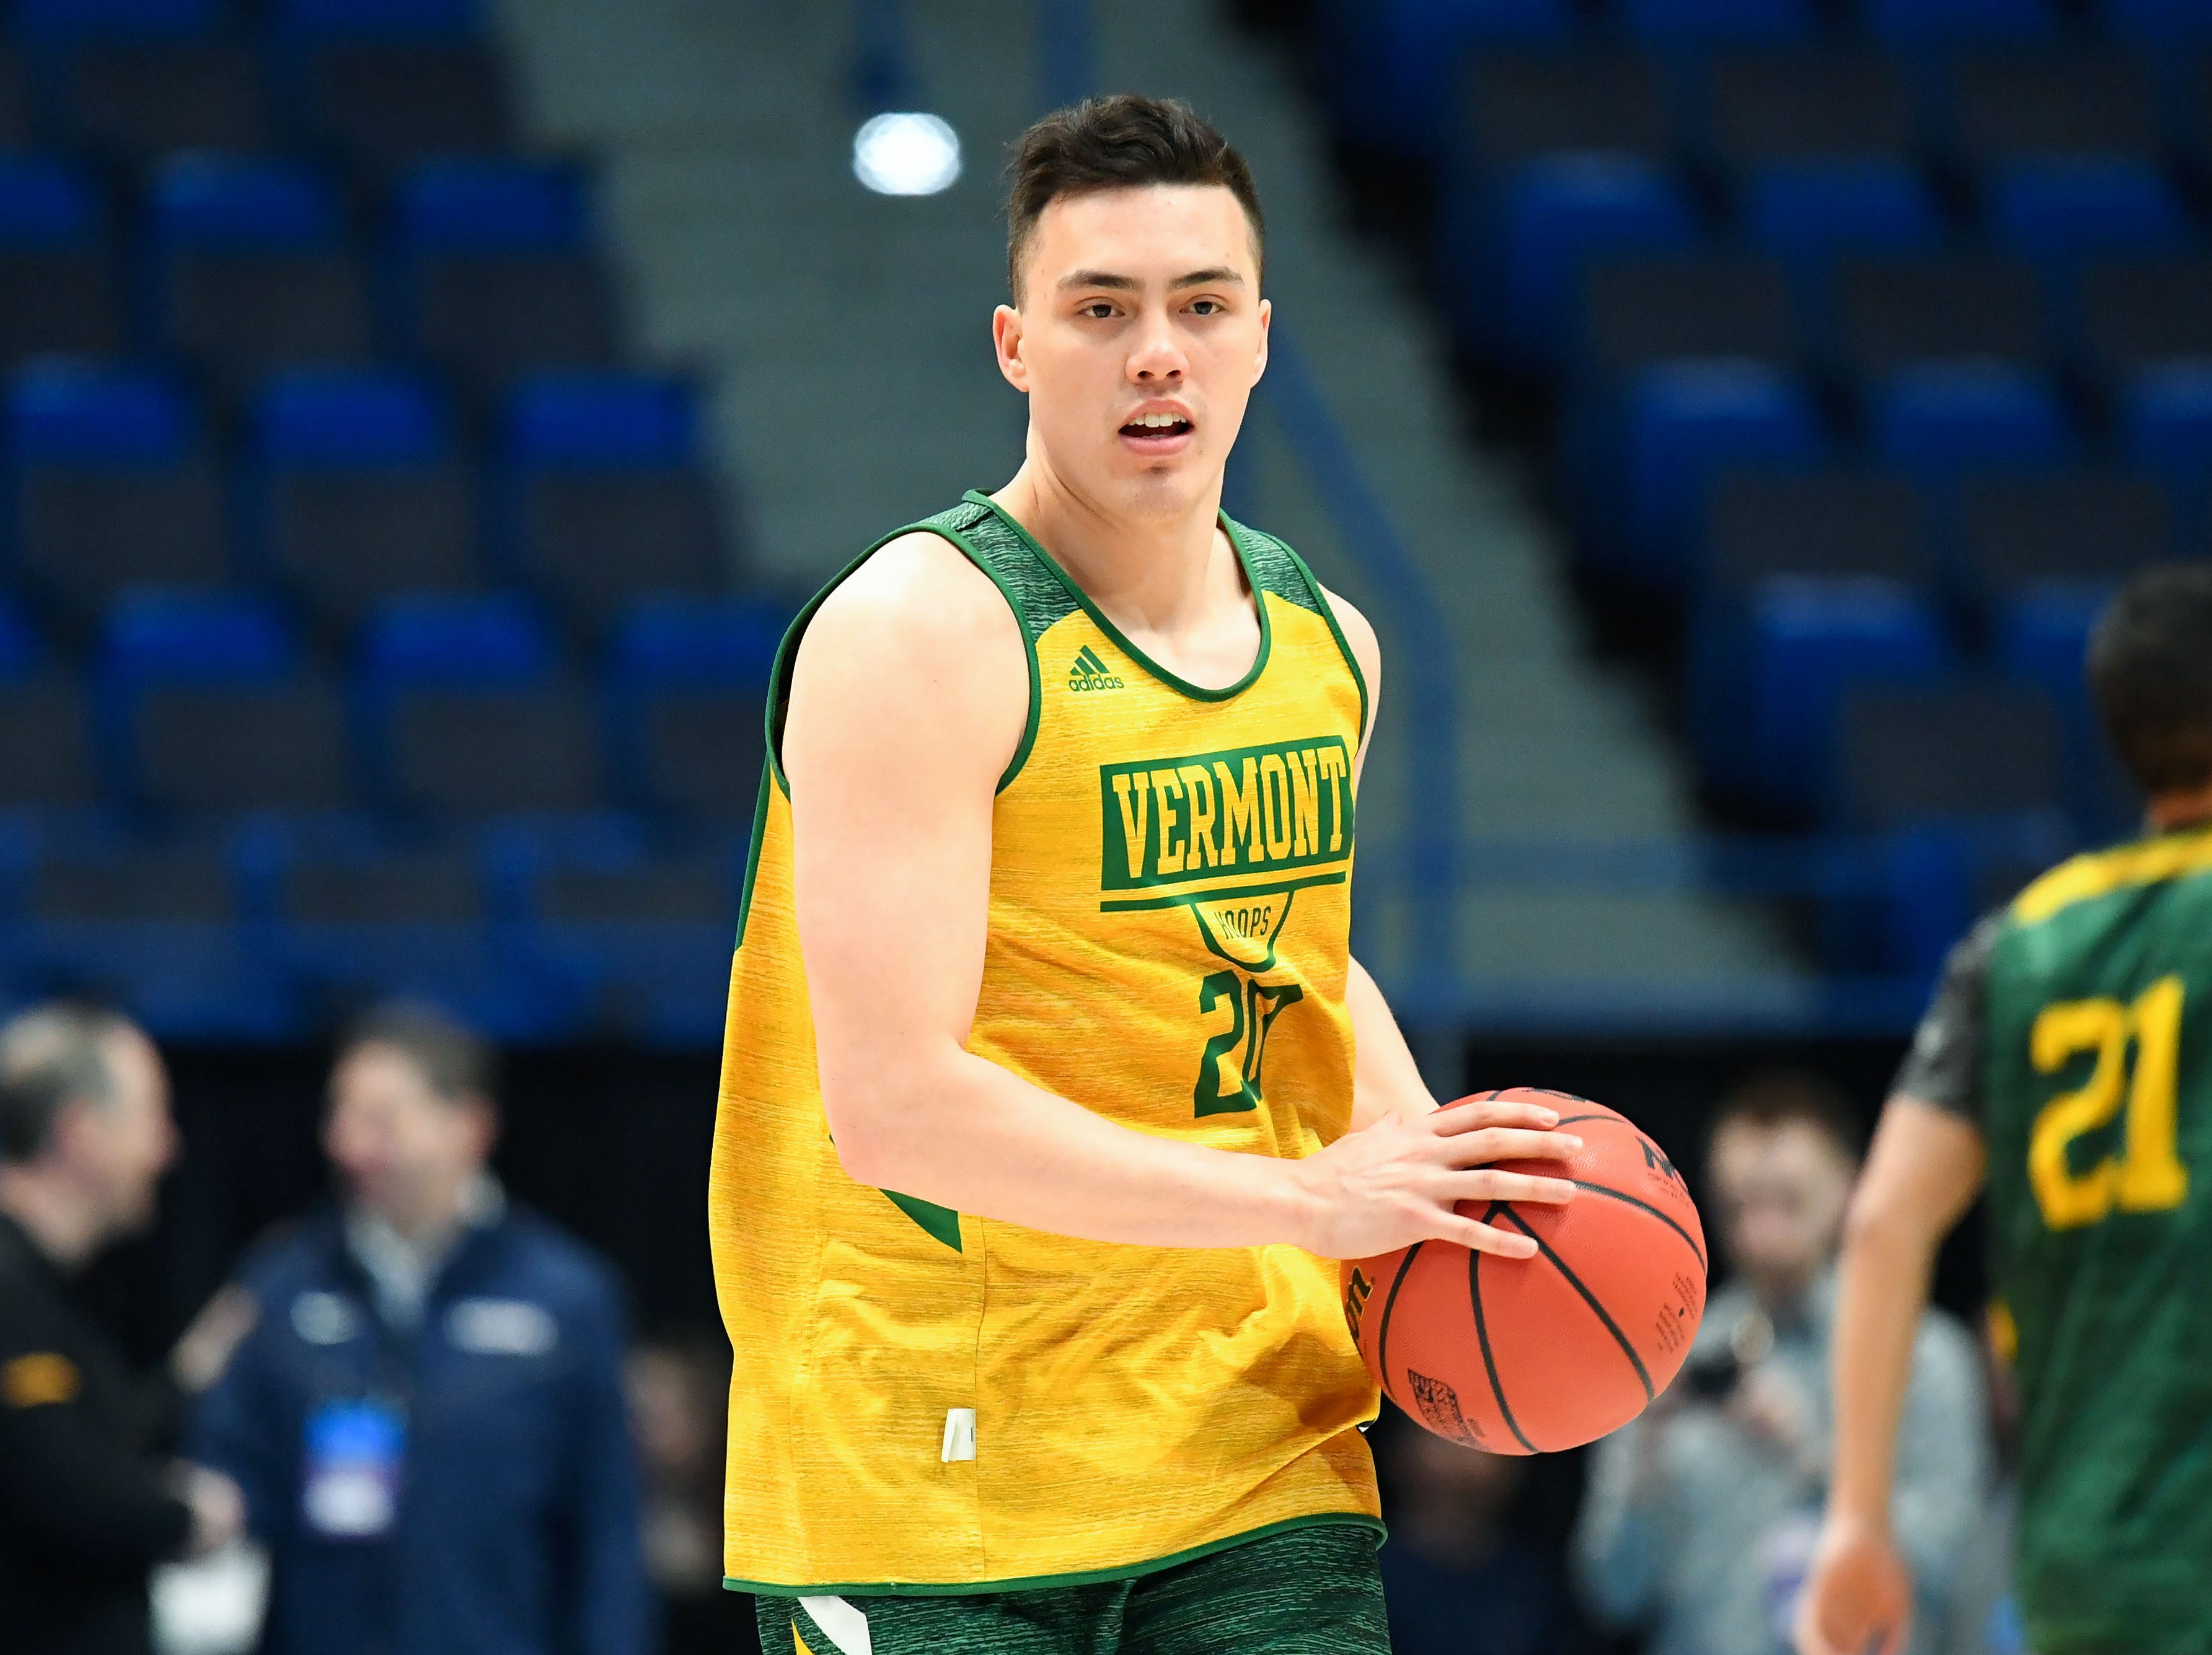 Mar 20, 2019; Hartford, CT, USA; Vermont Catamounts guard Ernie Duncan (20) passes the ball during practice before the first round of the 2019 NCAA Tournament at XL Center. Mandatory Credit: Robert Deutsch-USA TODAY Sports